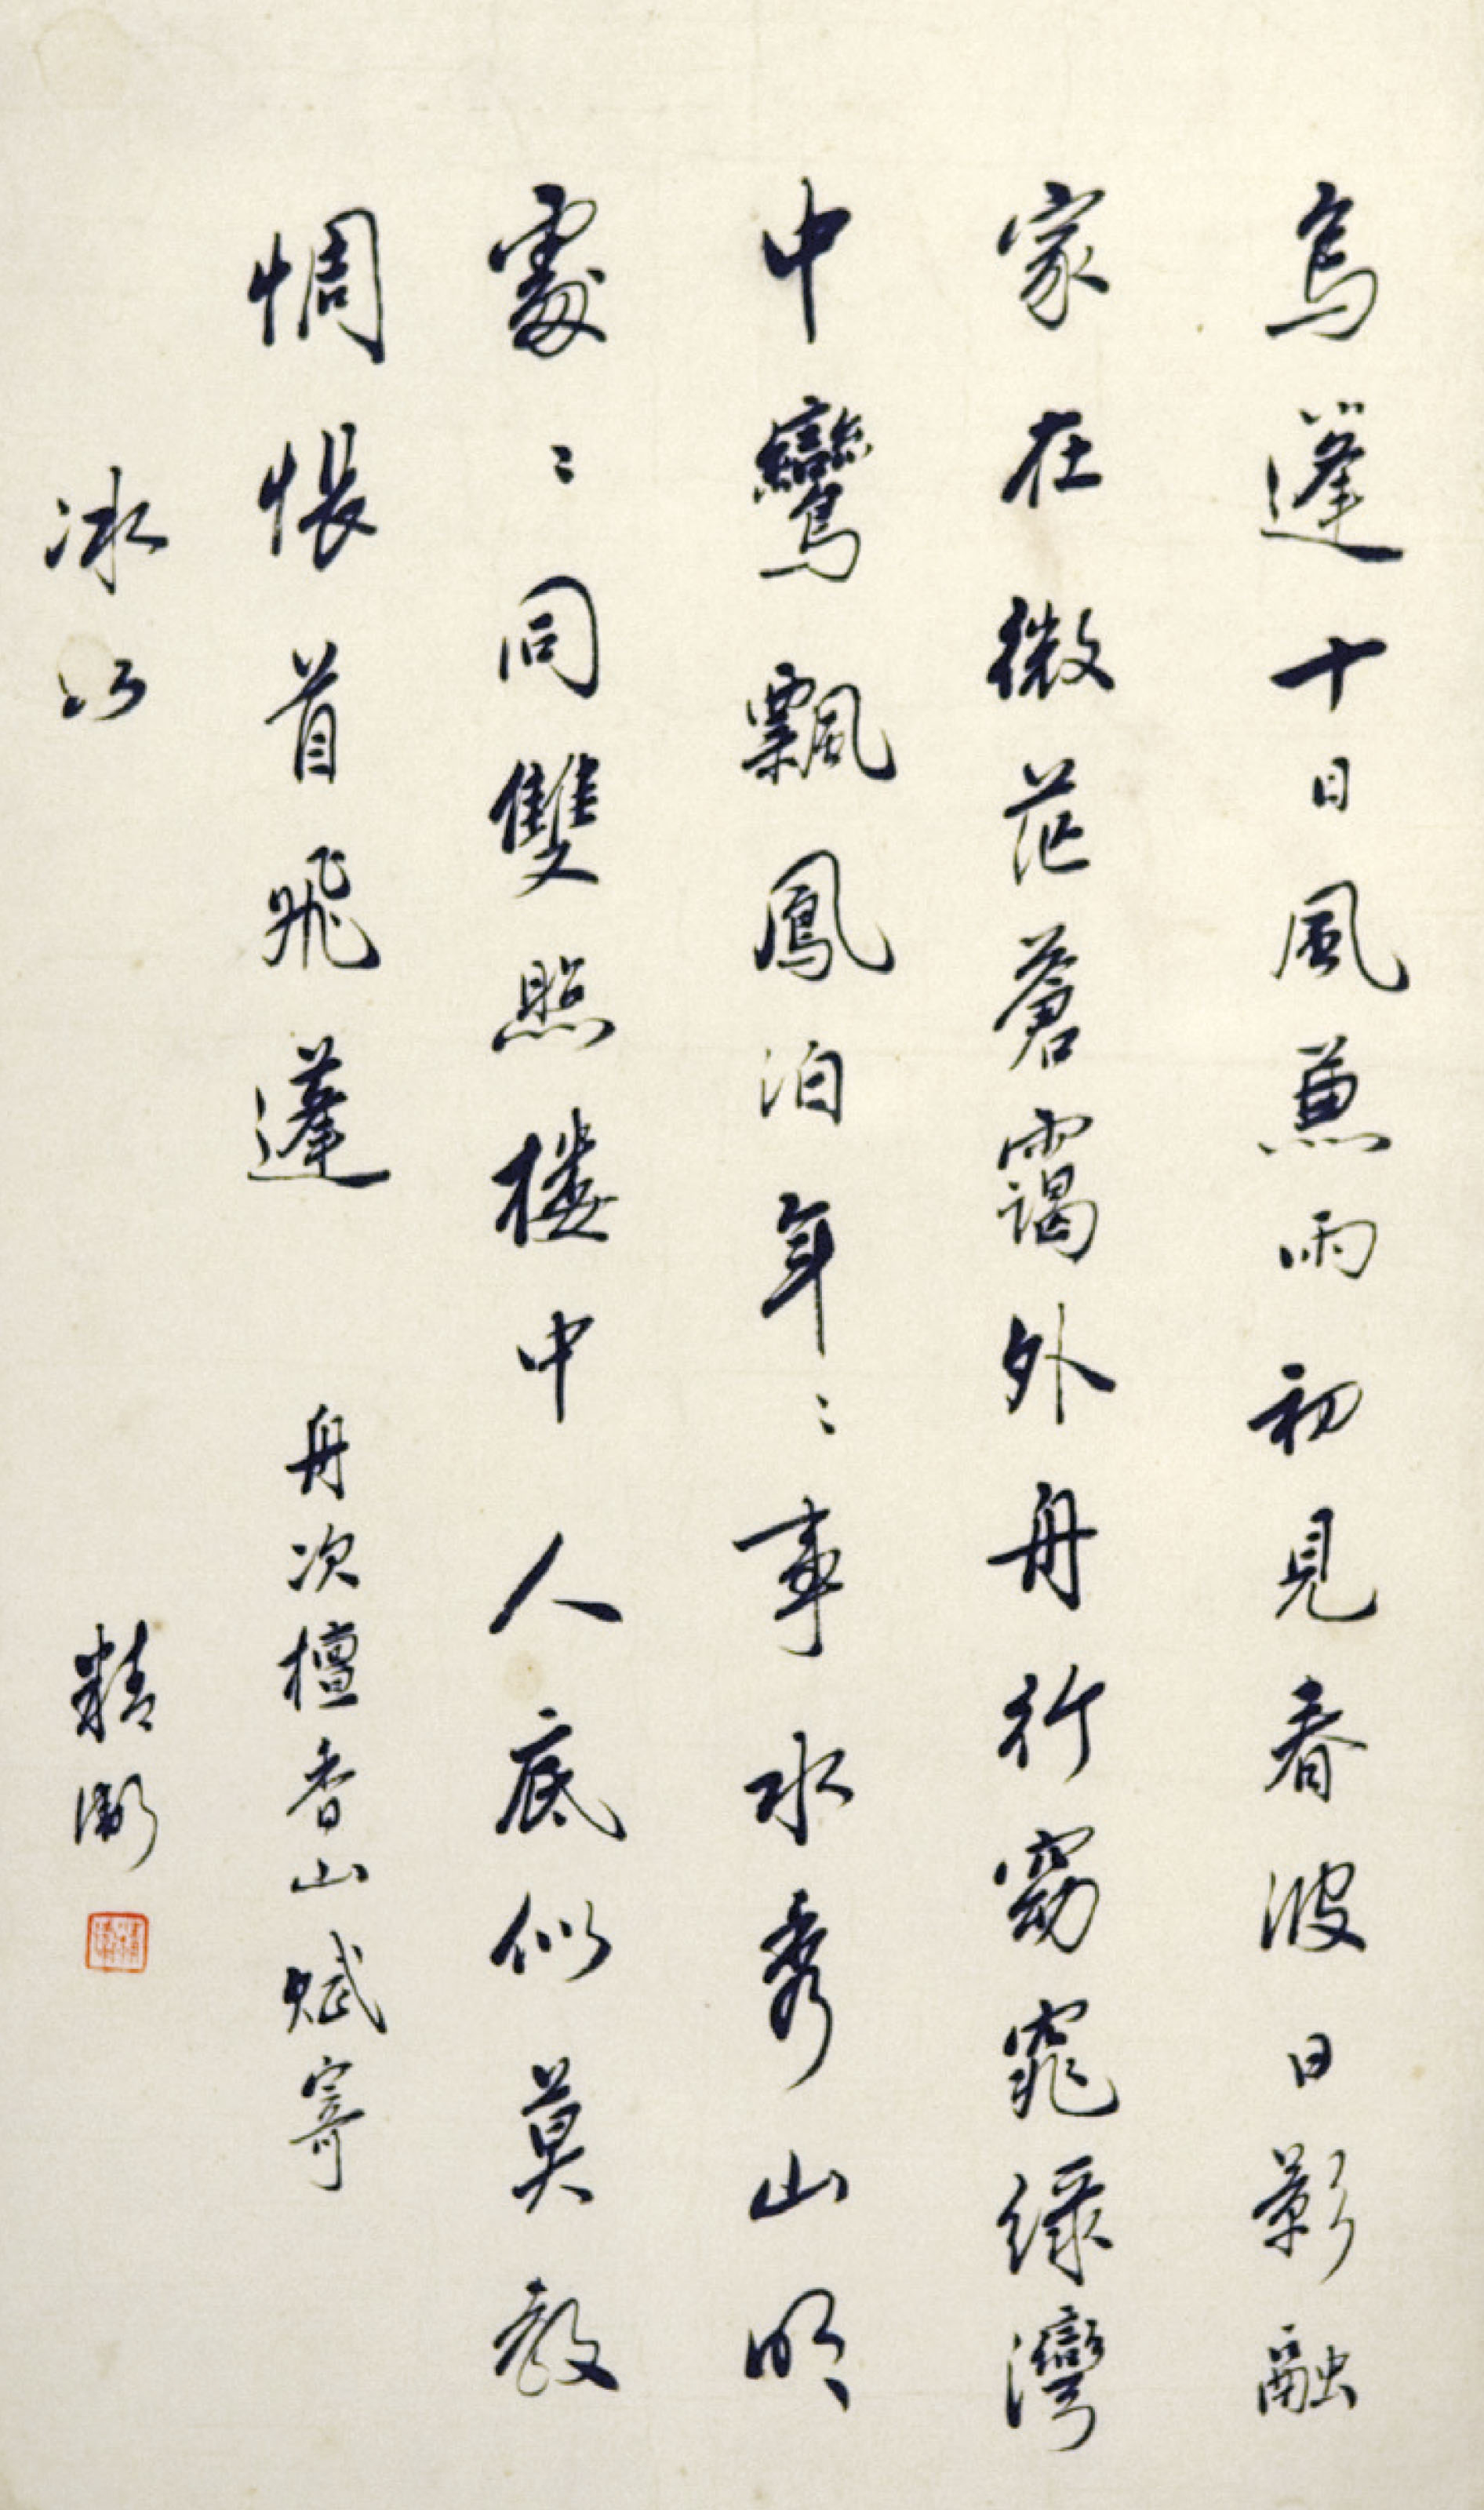 Poem from Shuangzhaolou: To Bingru, on Boat Passing Through Honolulu